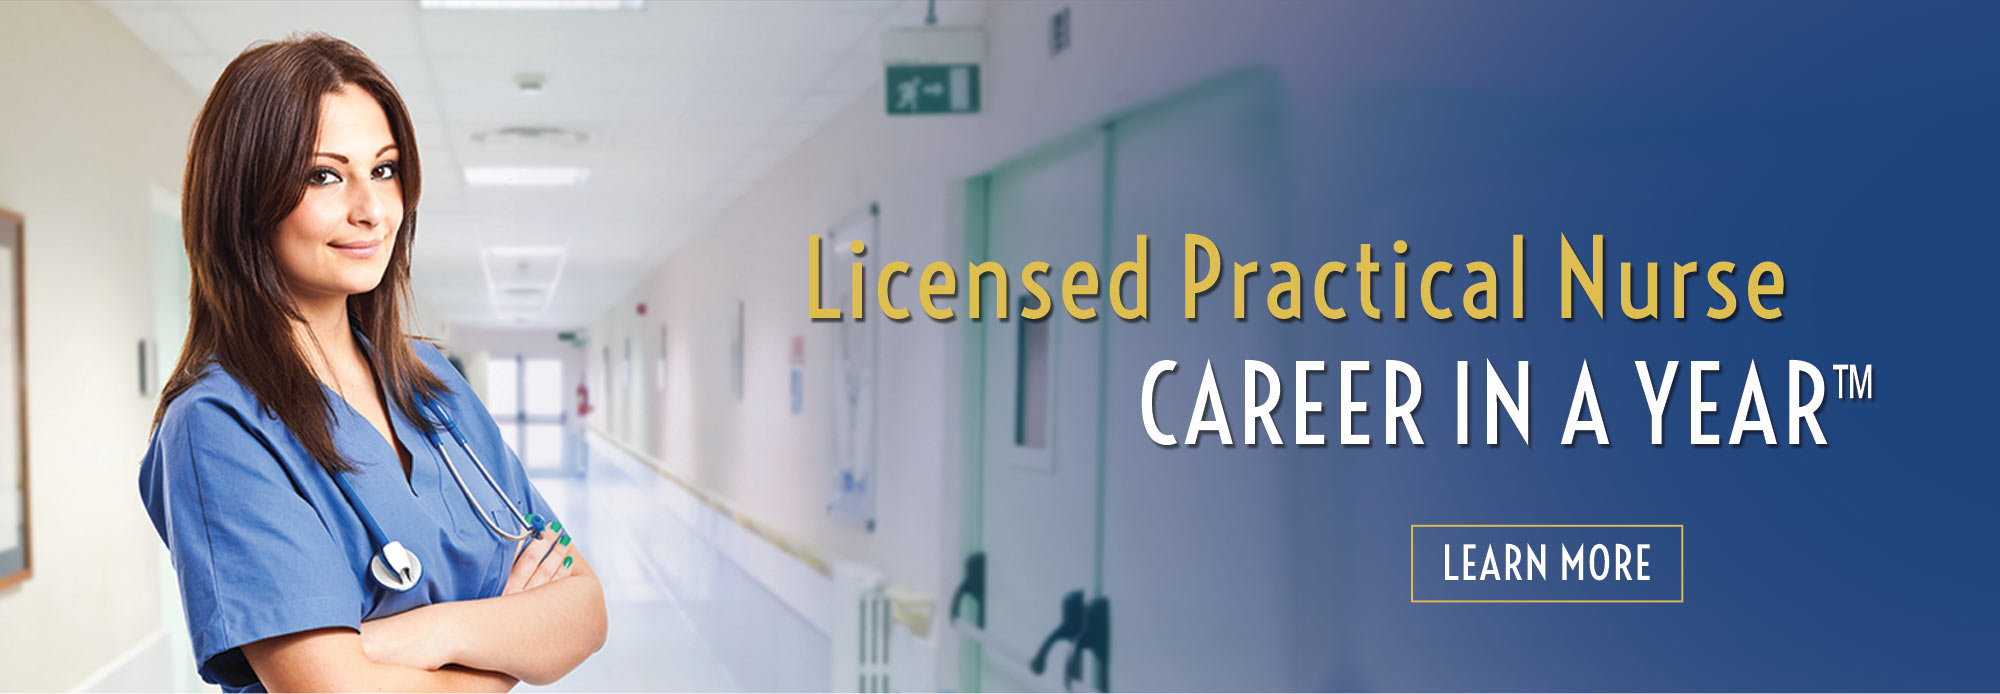 Licensed Practical Nurse Career in a Year